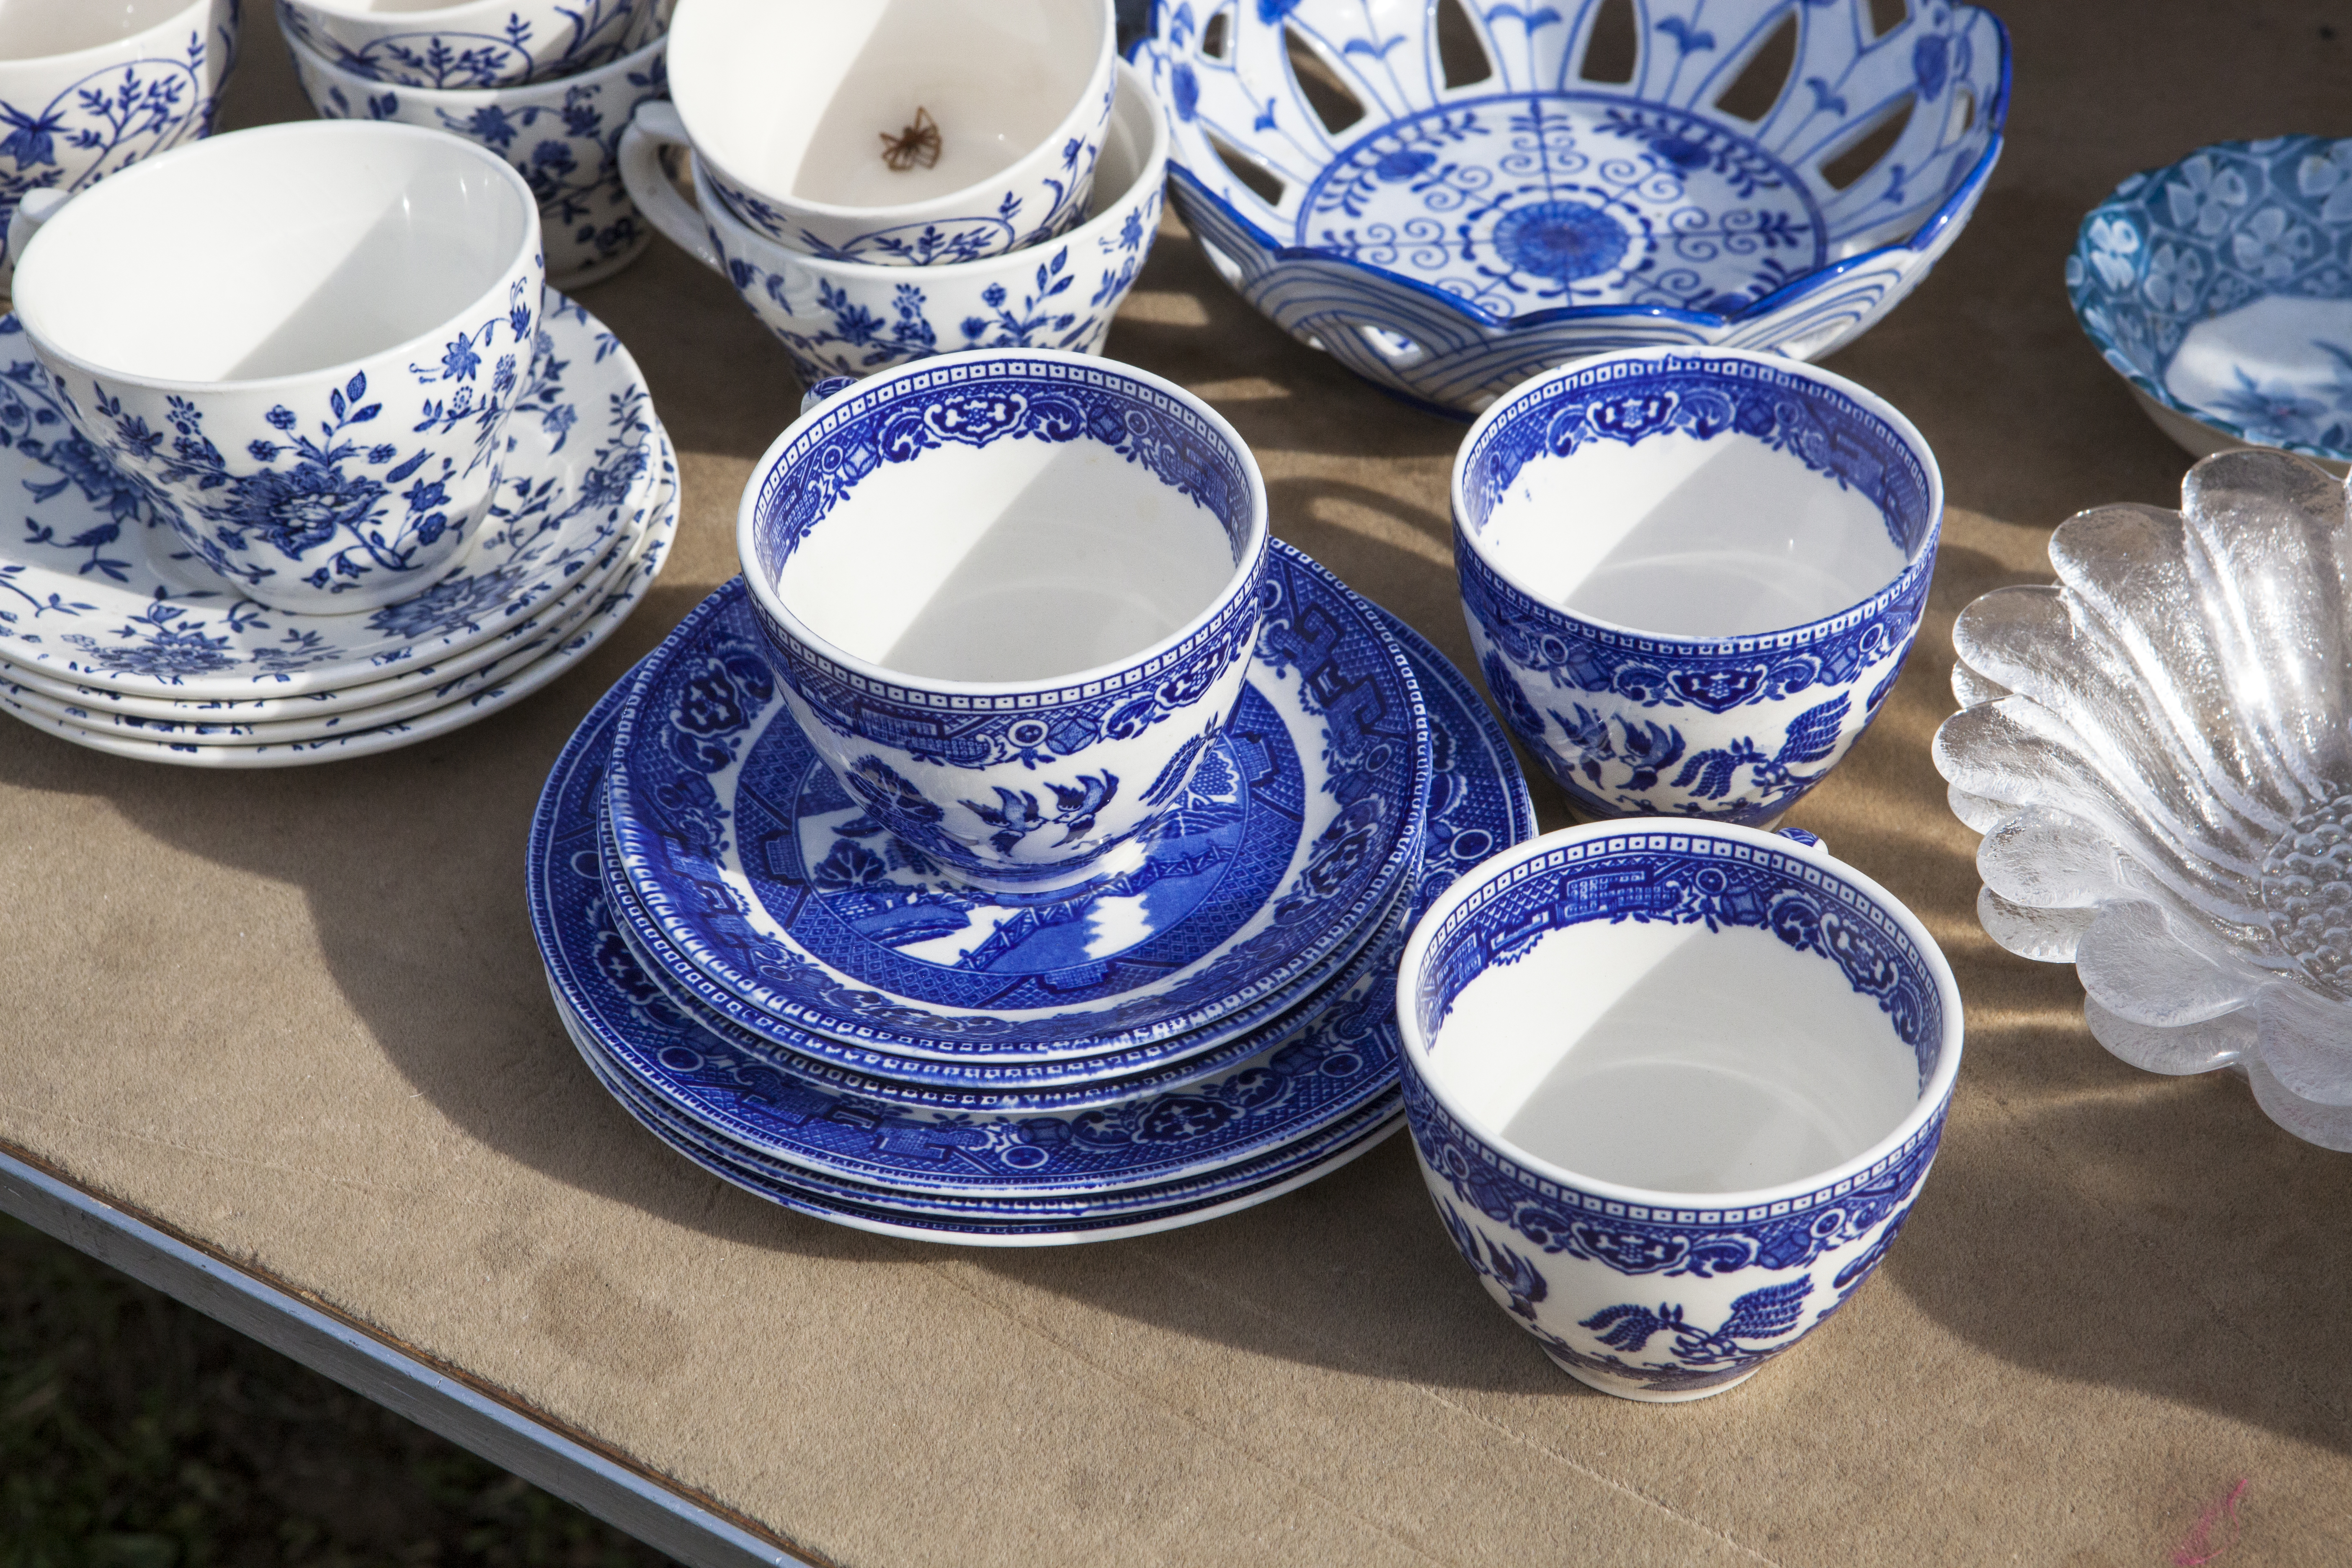 How to Tell If Old China Dishes Are Valuable  Hunker